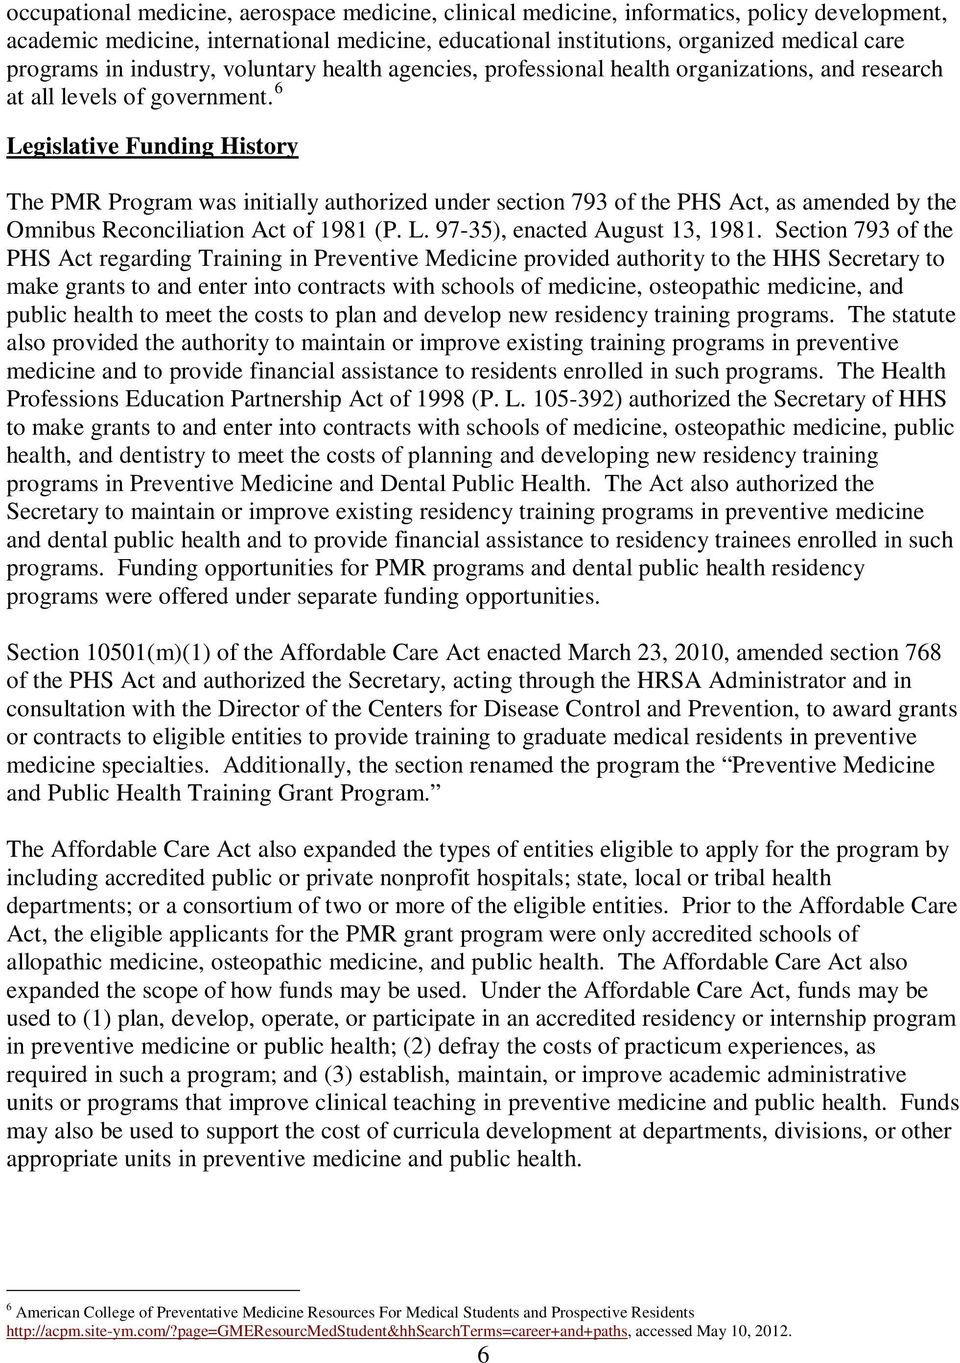 6 Legislative Funding History The PMR Program was initially authorized under section 793 of the PHS Act, as amended by the Omnibus Reconciliation Act of 1981 (P. L. 97-35), enacted August 13, 1981.